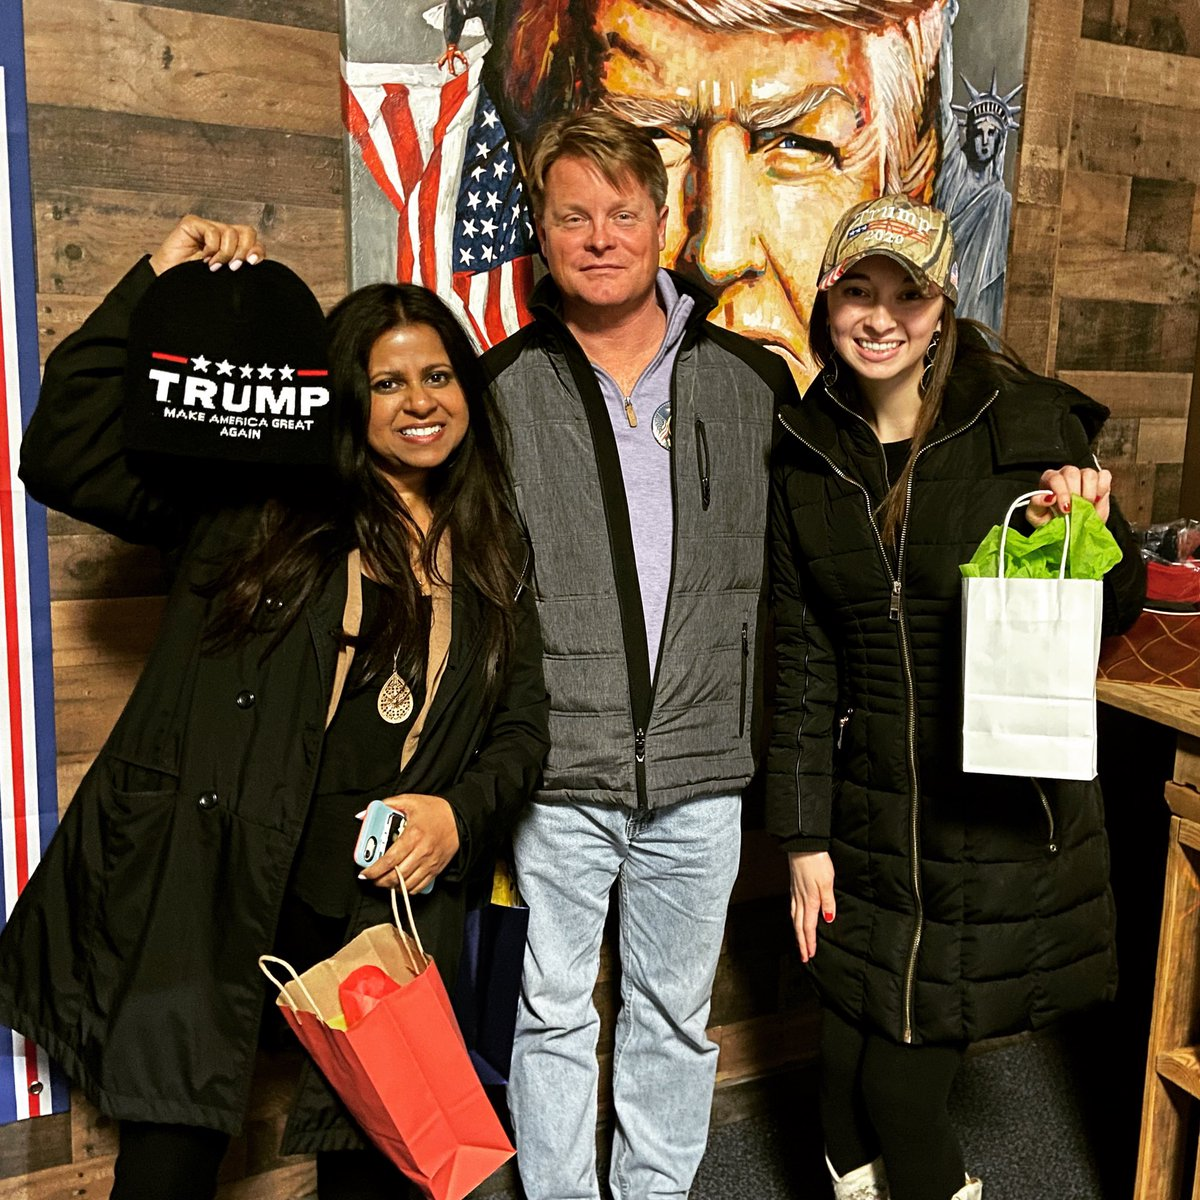 Introducing our Trump Trivia Tuesday winners tonight!!  We learned a lot about our past presidents and had tons of fun!  If you missed it, join us next month!!  #trumptrivia  #triviatuesday #trump2020 #americafirst #maga #kag #makeamericagreatagain #keepamericagreatpic.twitter.com/2zxPaCWhSc